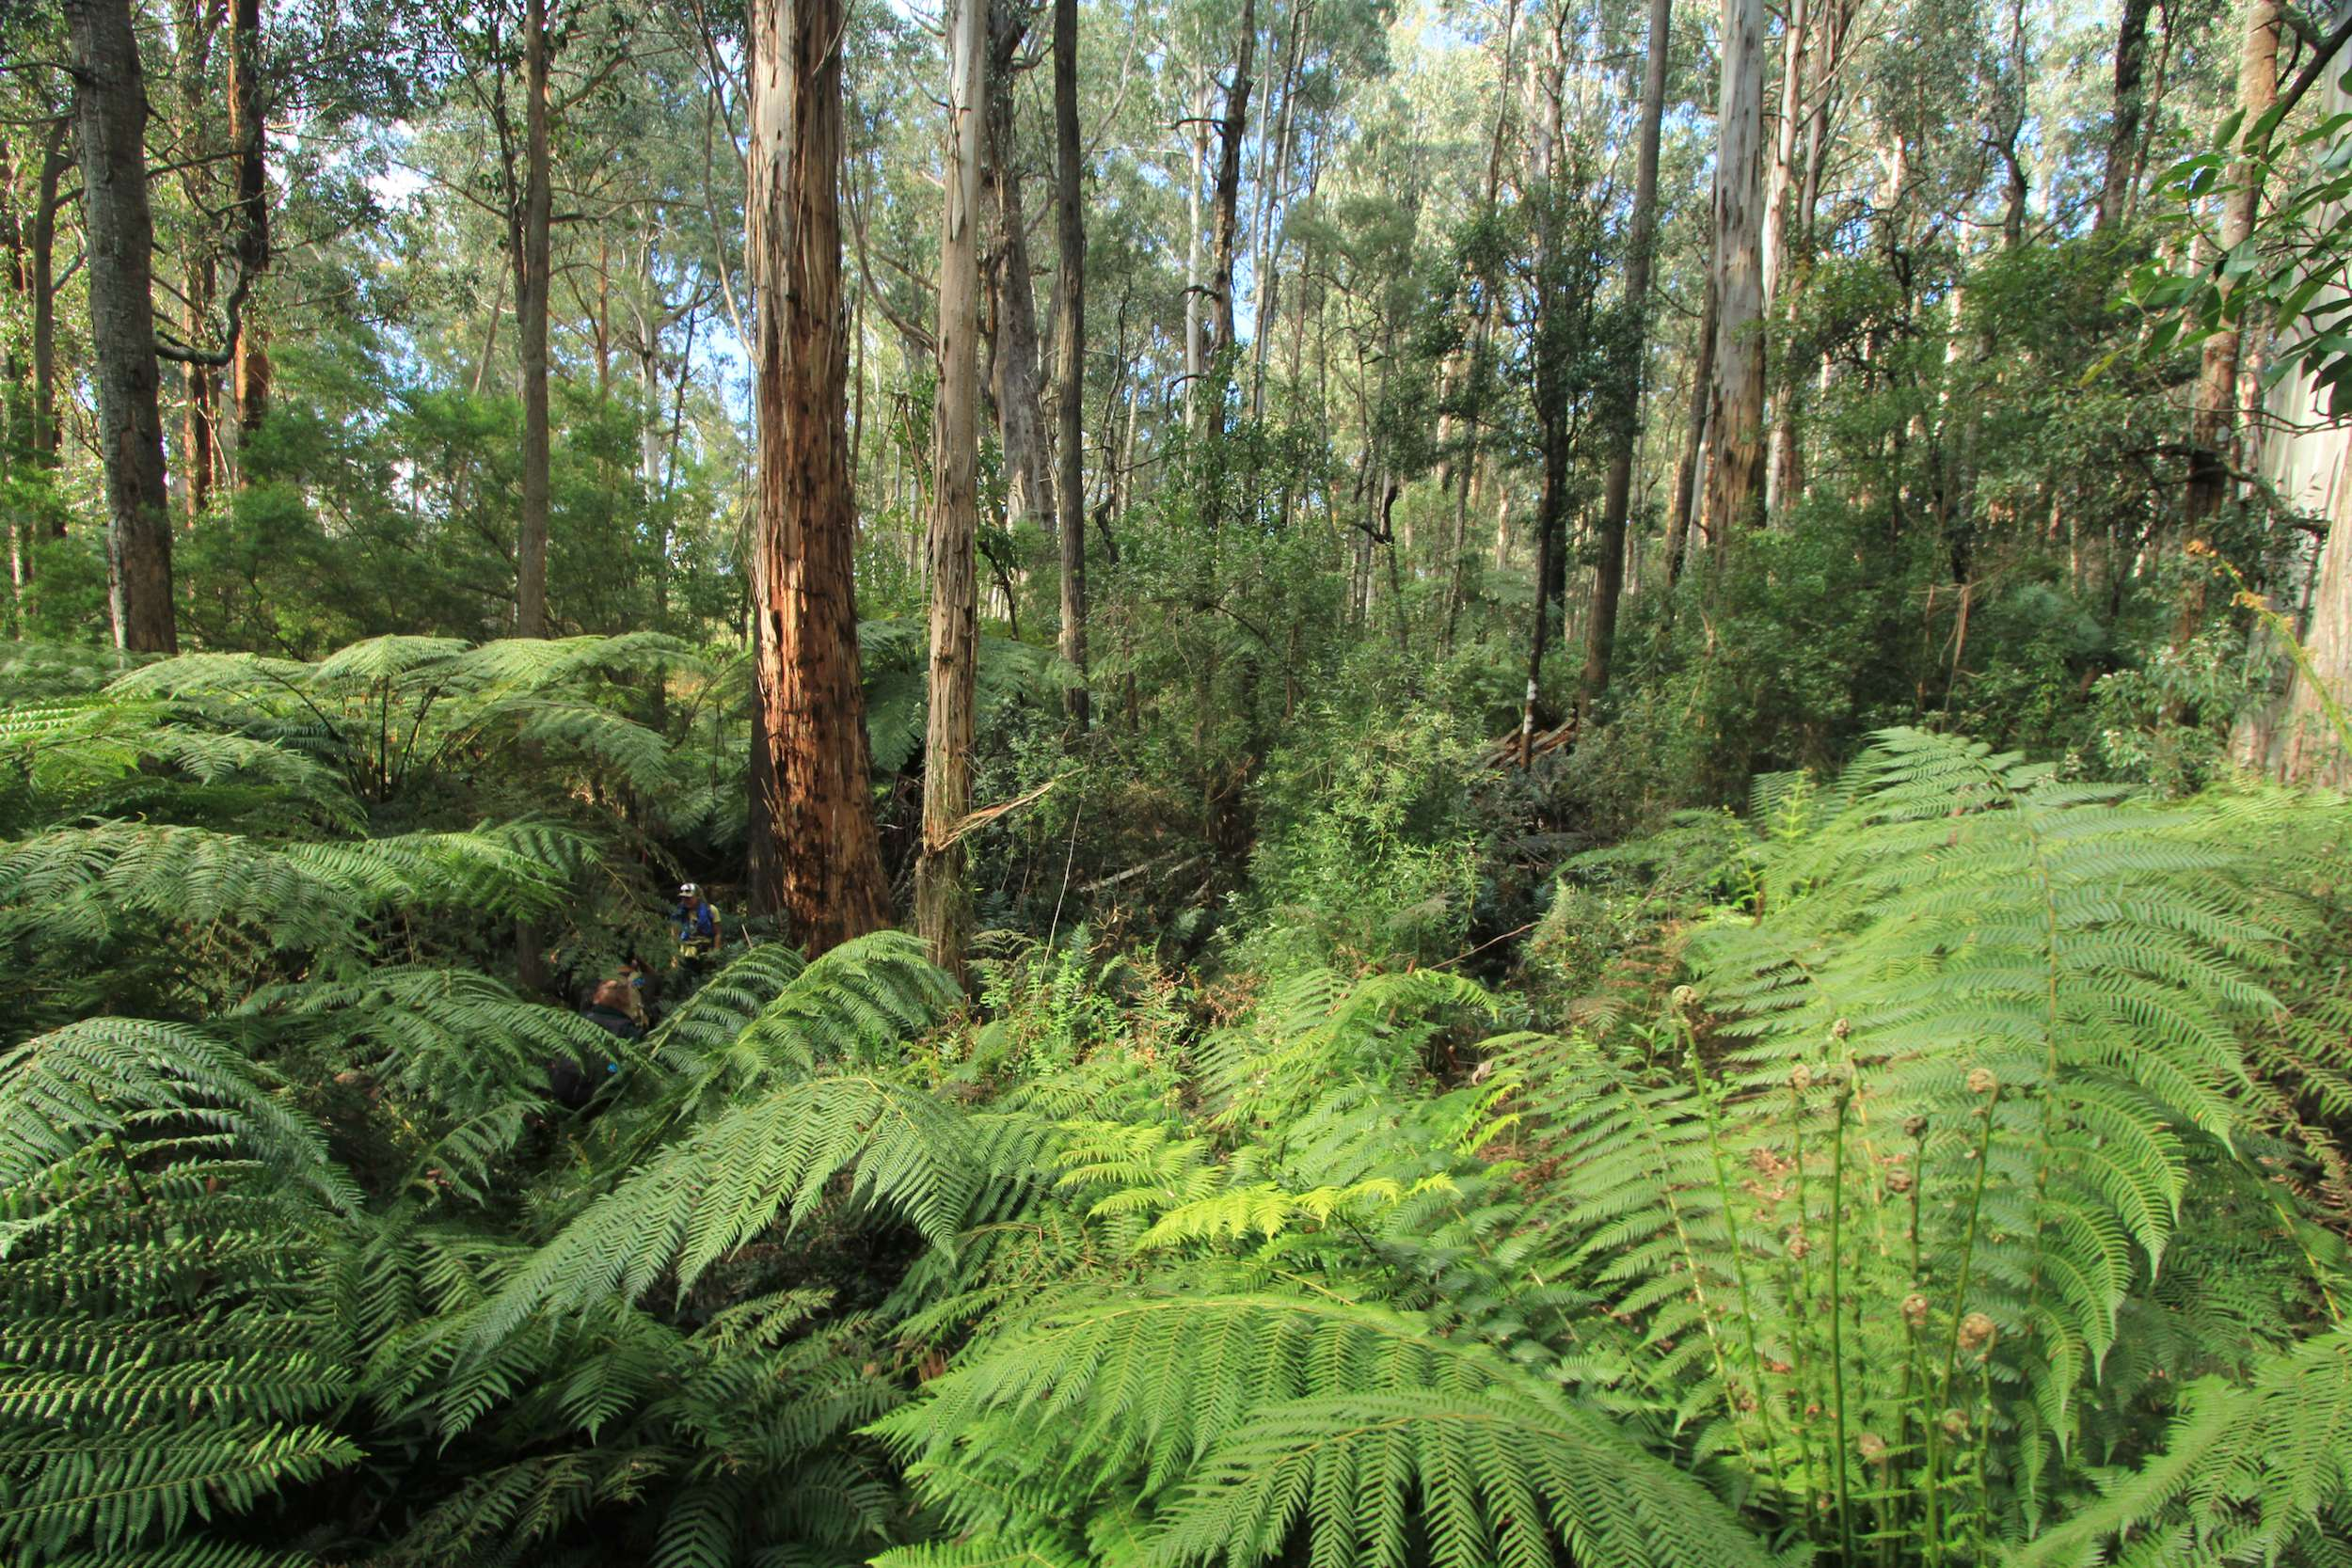 Web_Jersey_Ferns_Forest_scene_IMG_8928_copy.jpg